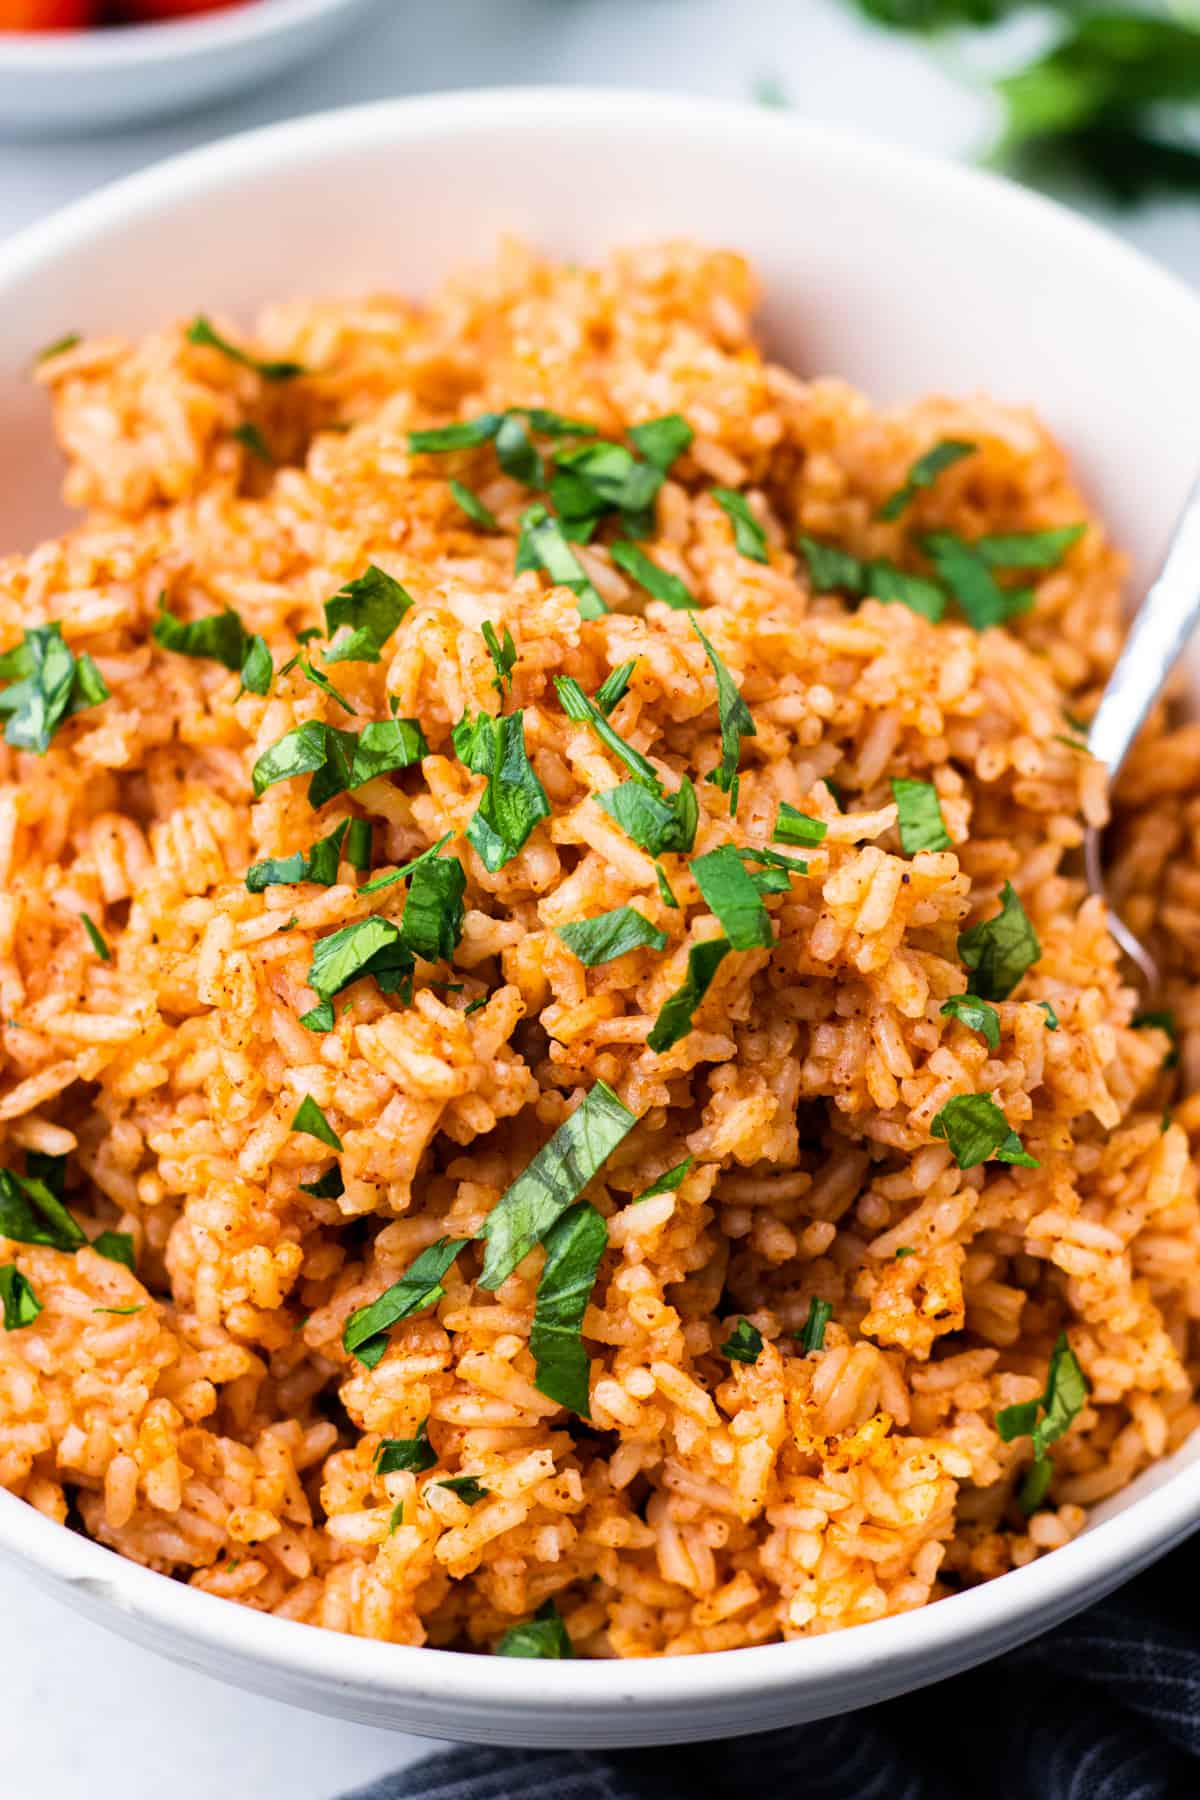 Mexican rice in a bowl with a spoon and chopped parsley.